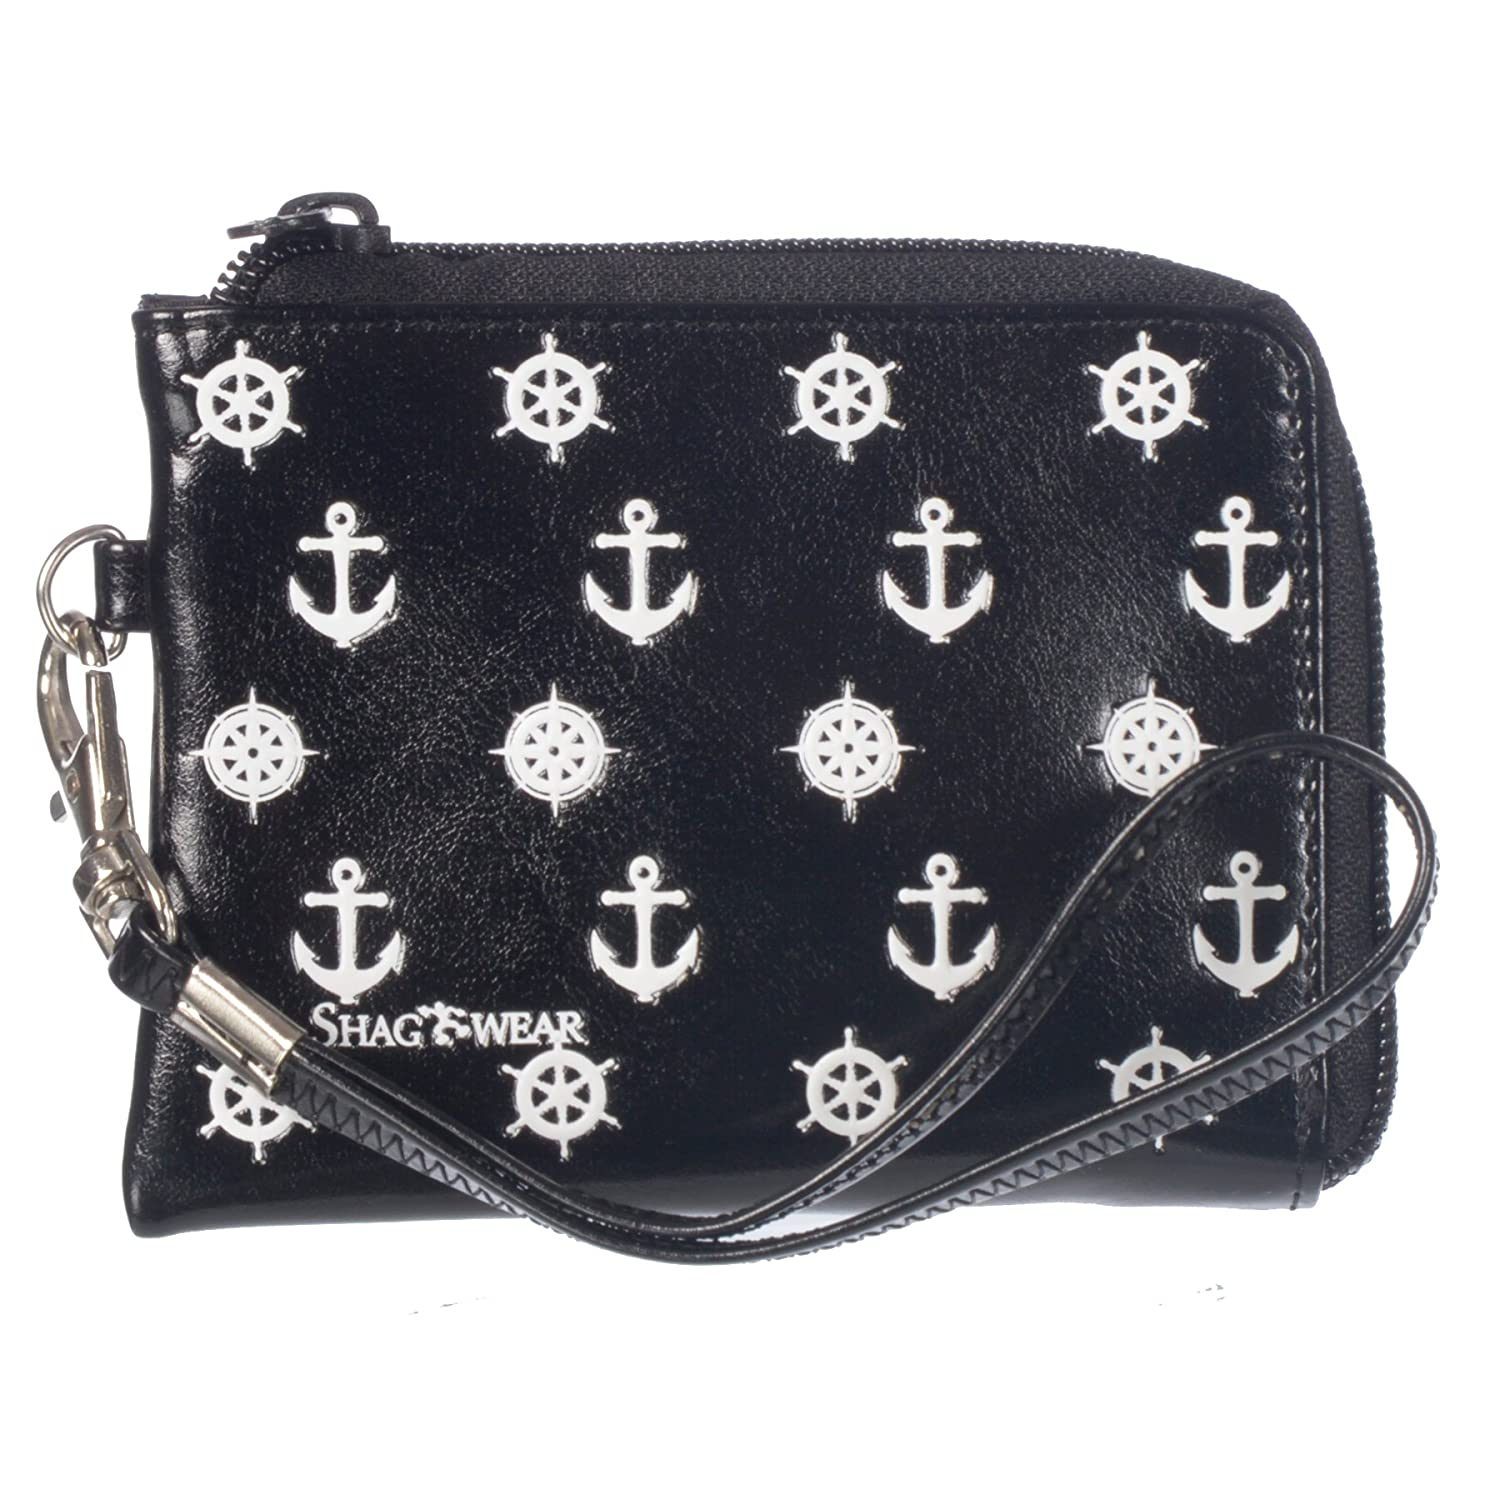 Anchors Black Shagwear Women's Birds and Insects Vegan Leather Clasp Coin Purse